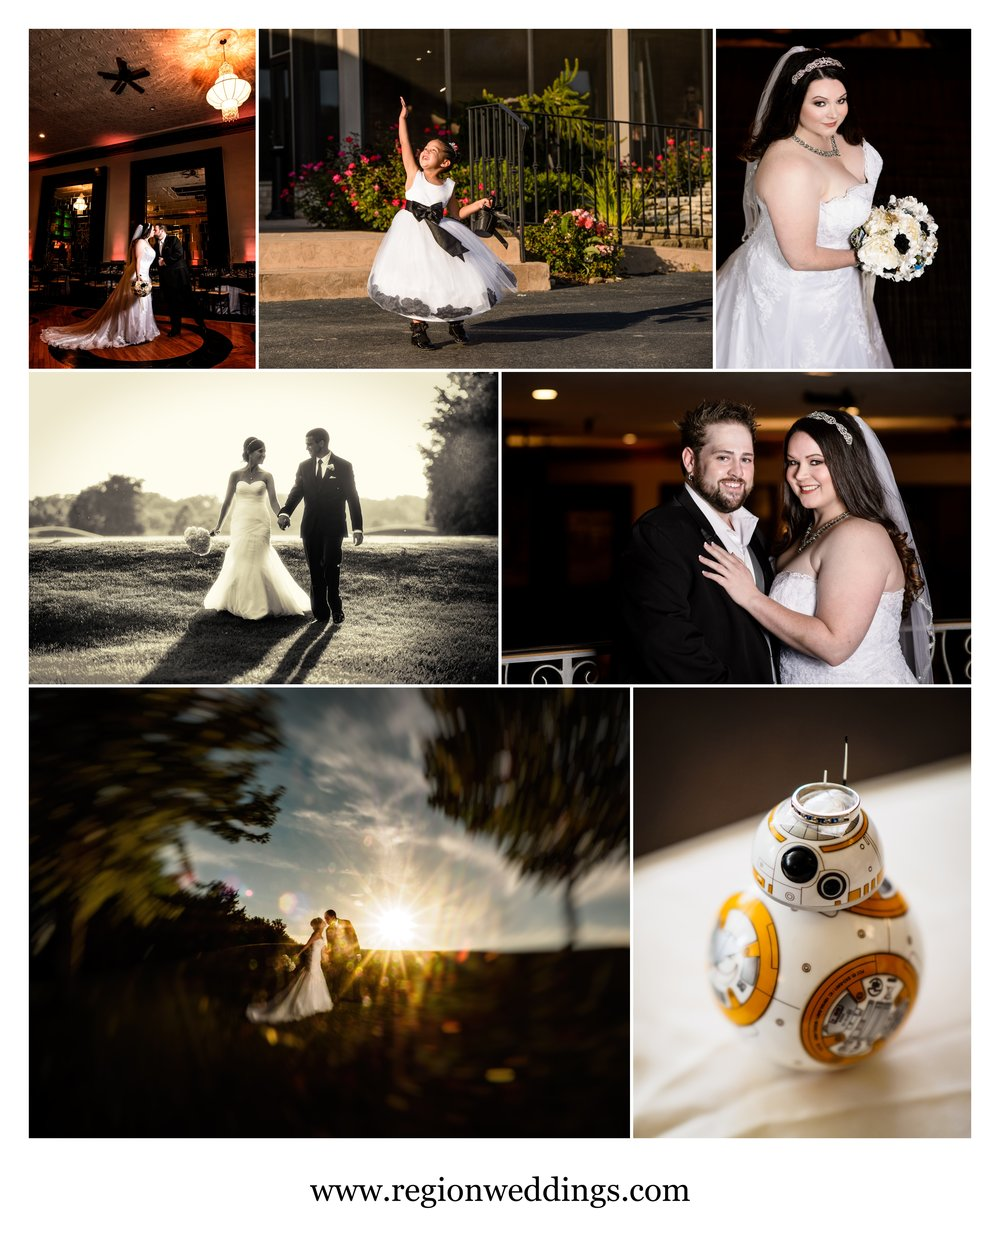 September 2016 wedding photos in Northwest Indiana.